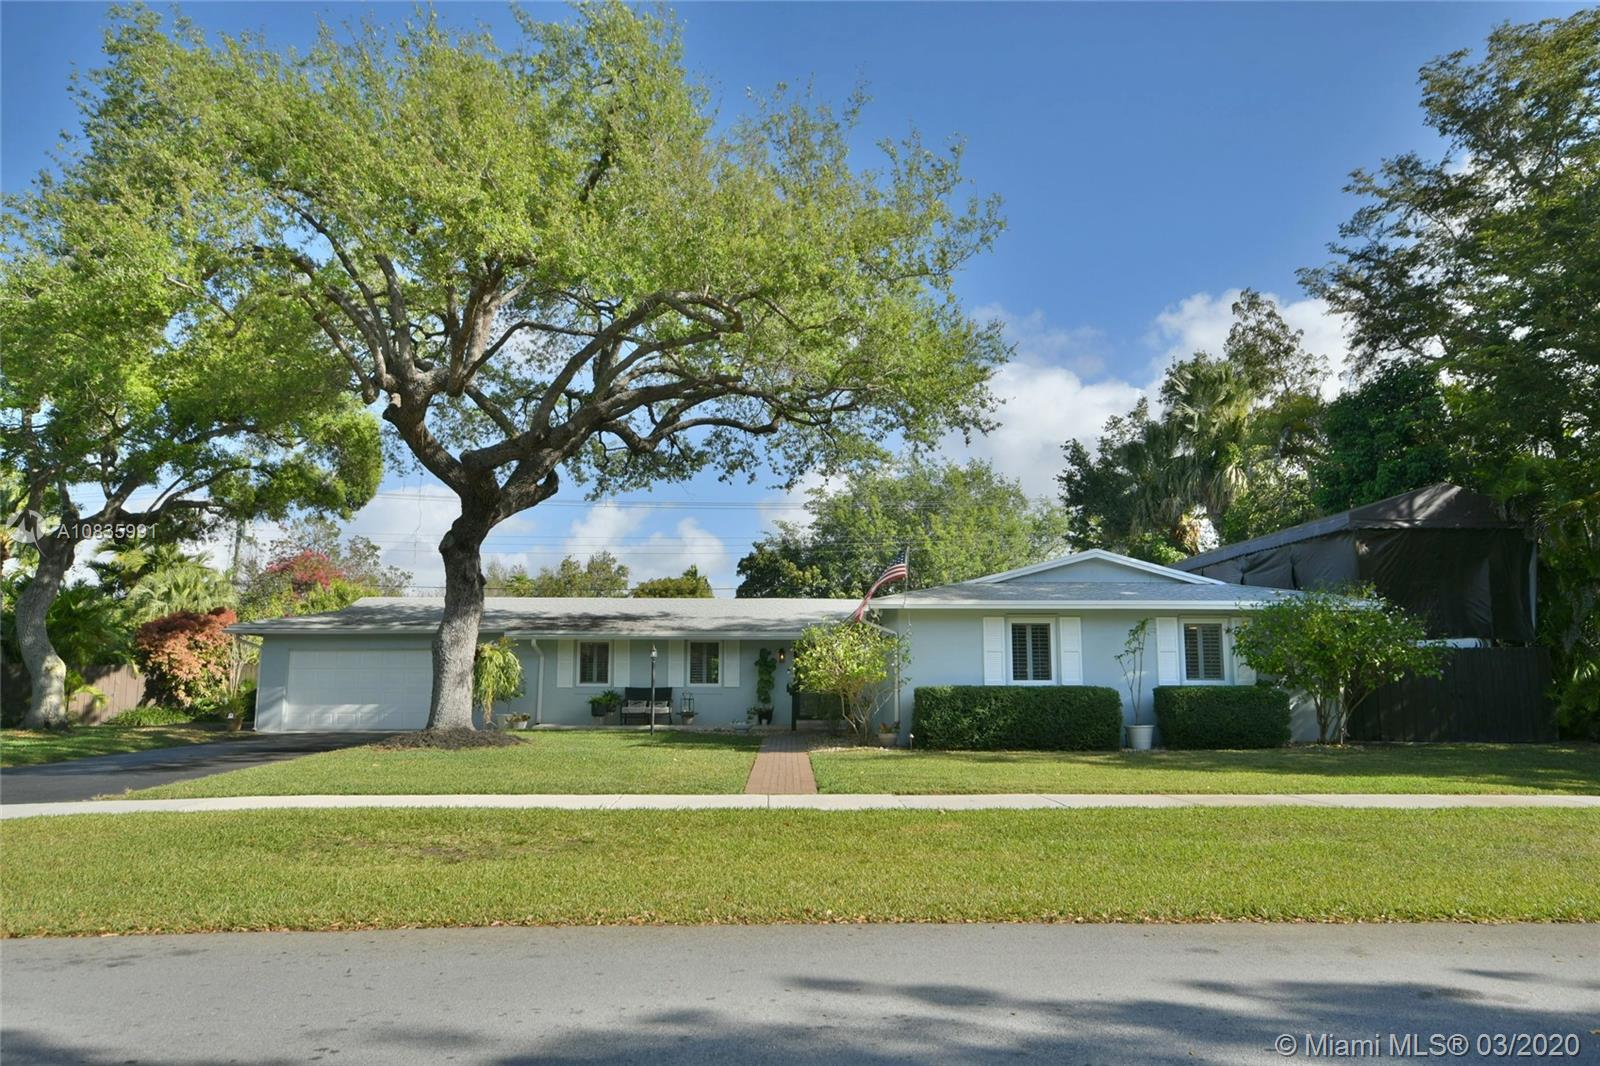 8715 SW 160th Street, Palmetto Bay, Florida 33157, 5 Bedrooms Bedrooms, ,3 BathroomsBathrooms,Residential,For Sale,8715 SW 160th Street,A10835991